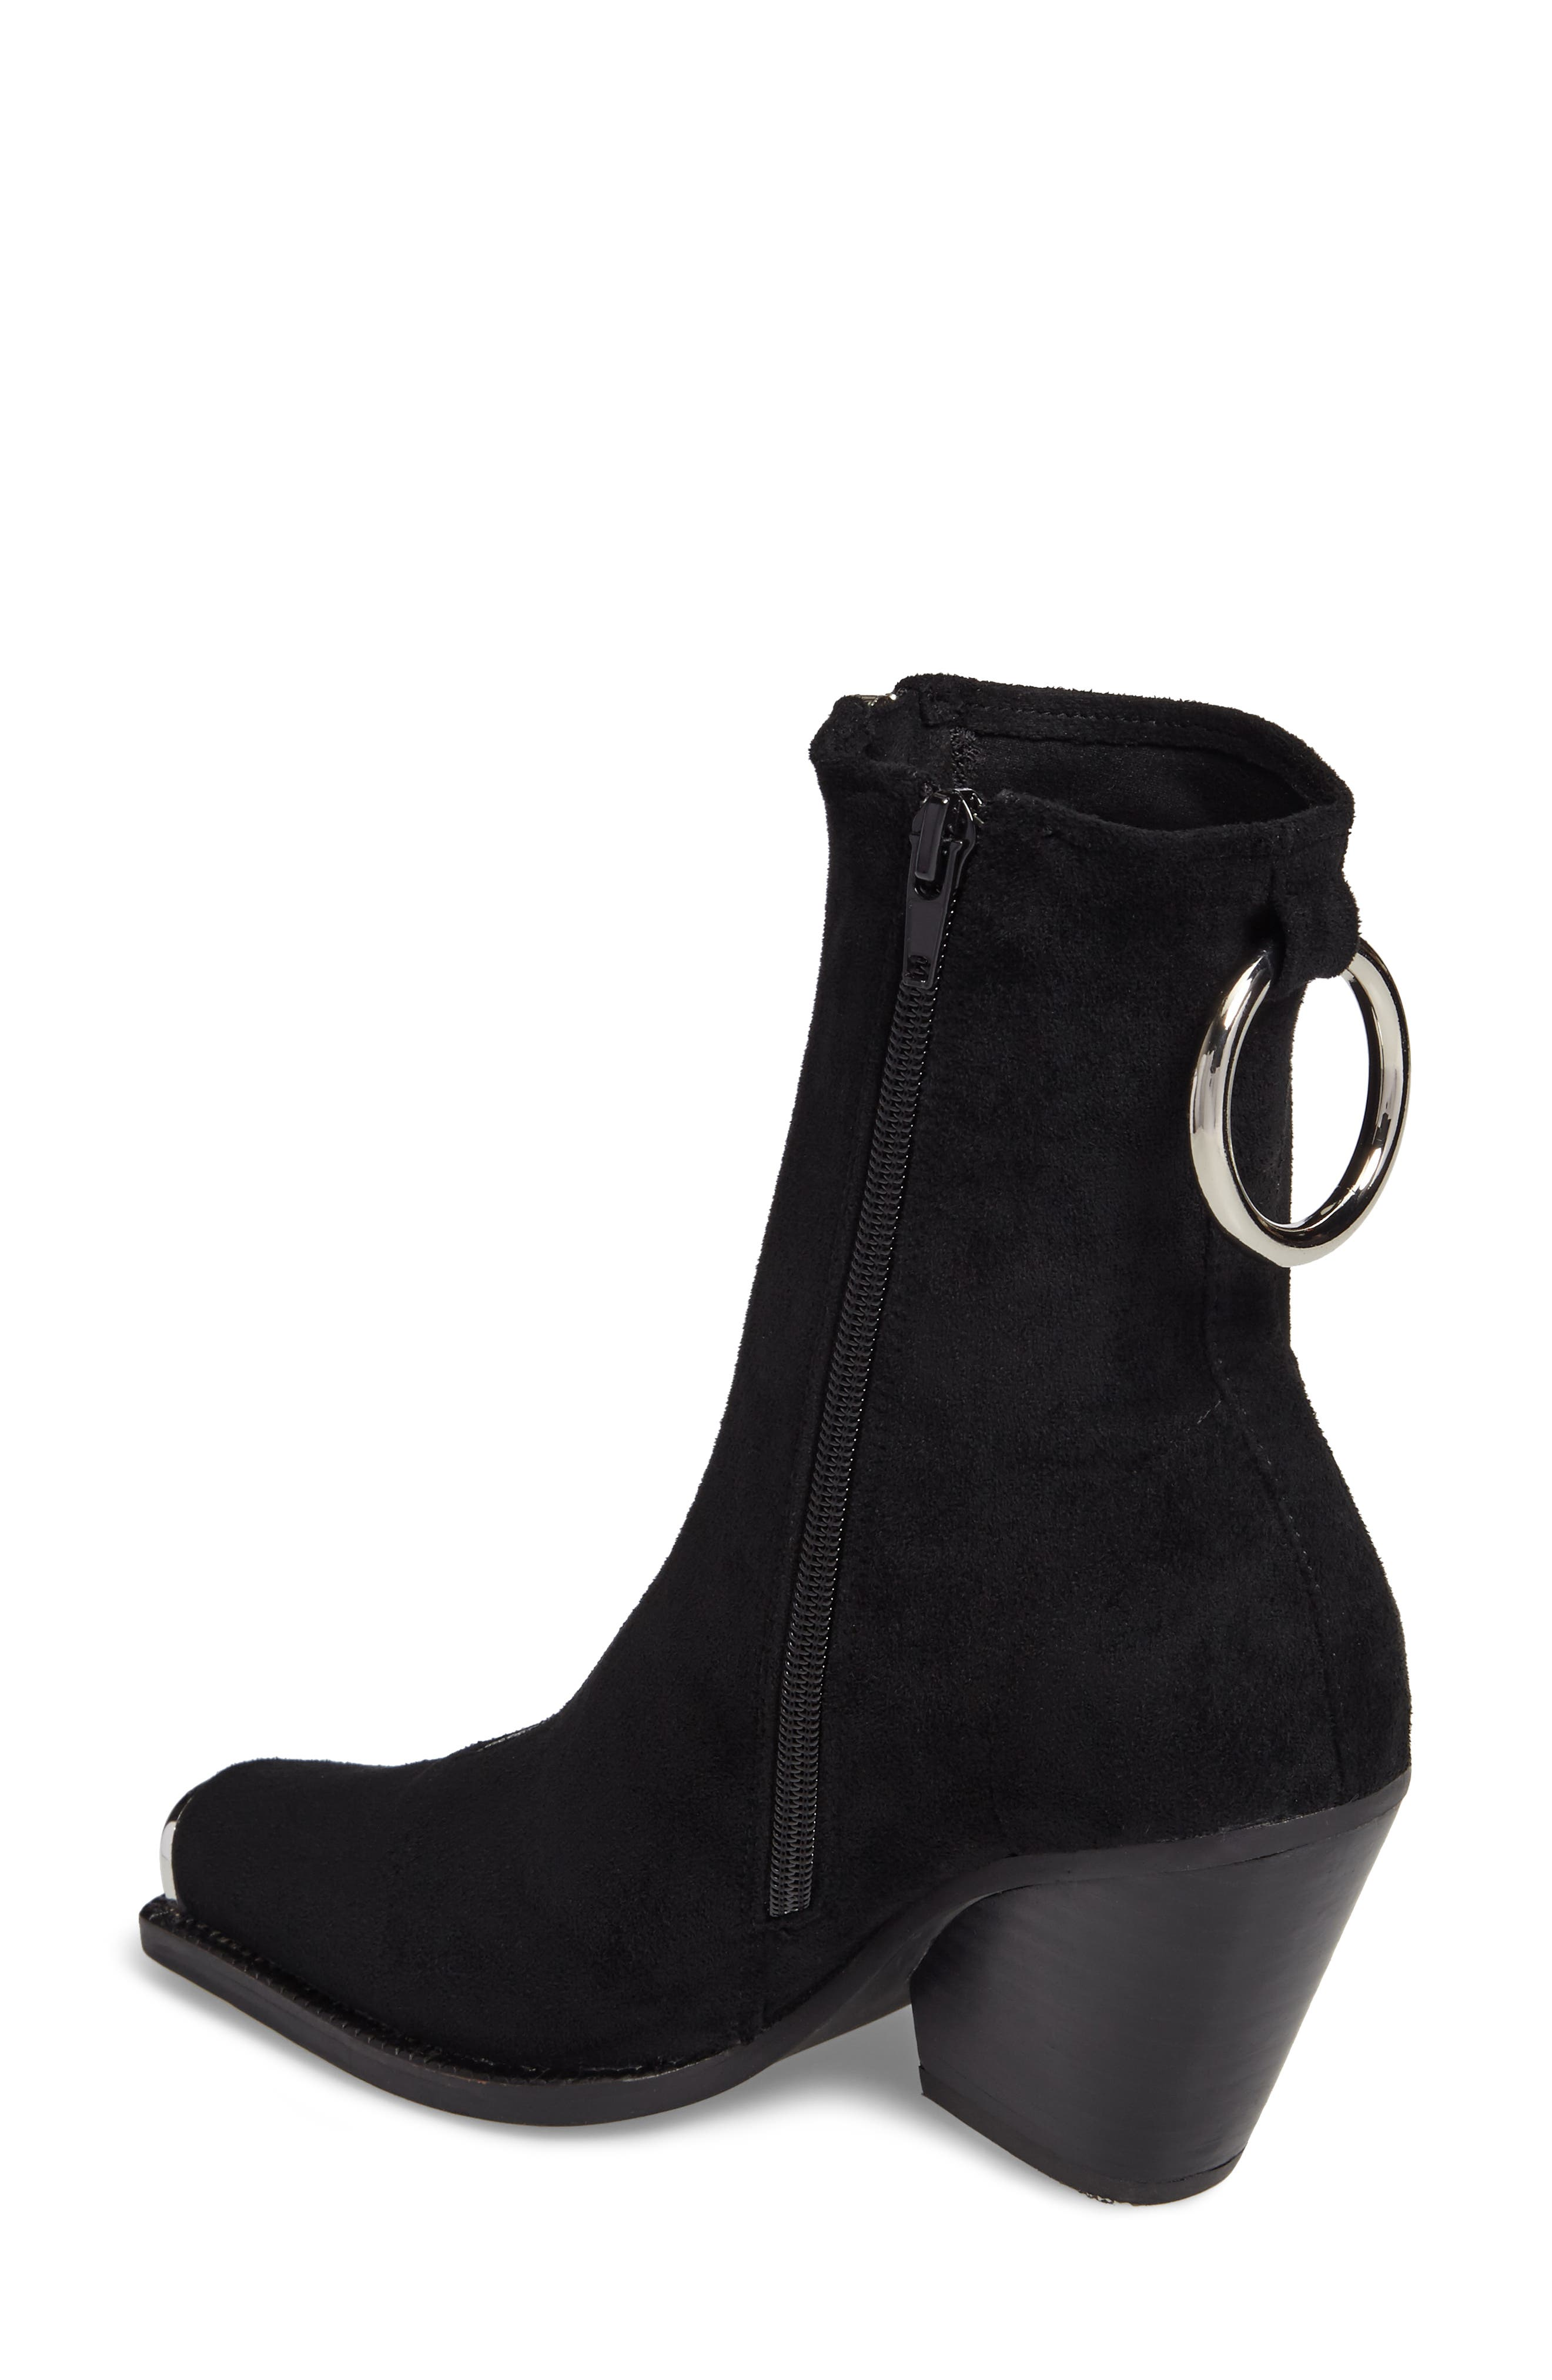 Eubank Stretch Bootie,                             Alternate thumbnail 2, color,                             Black Stretch Suede